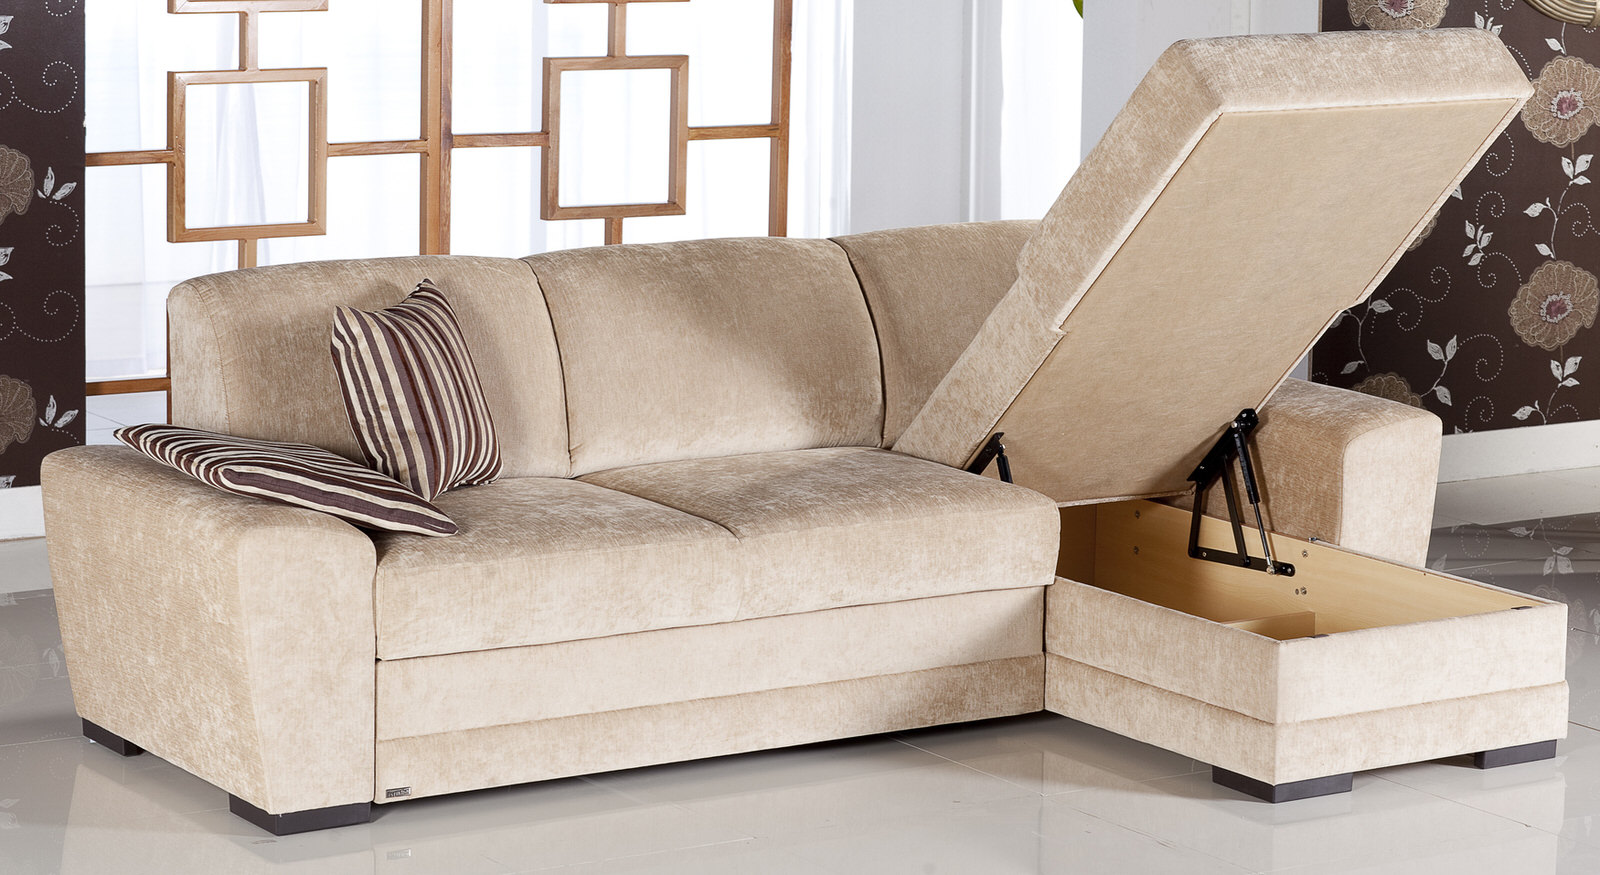 cream sectional sofa sofas center couch with chaise cream sectional sofa marvelous thesofa. Black Bedroom Furniture Sets. Home Design Ideas